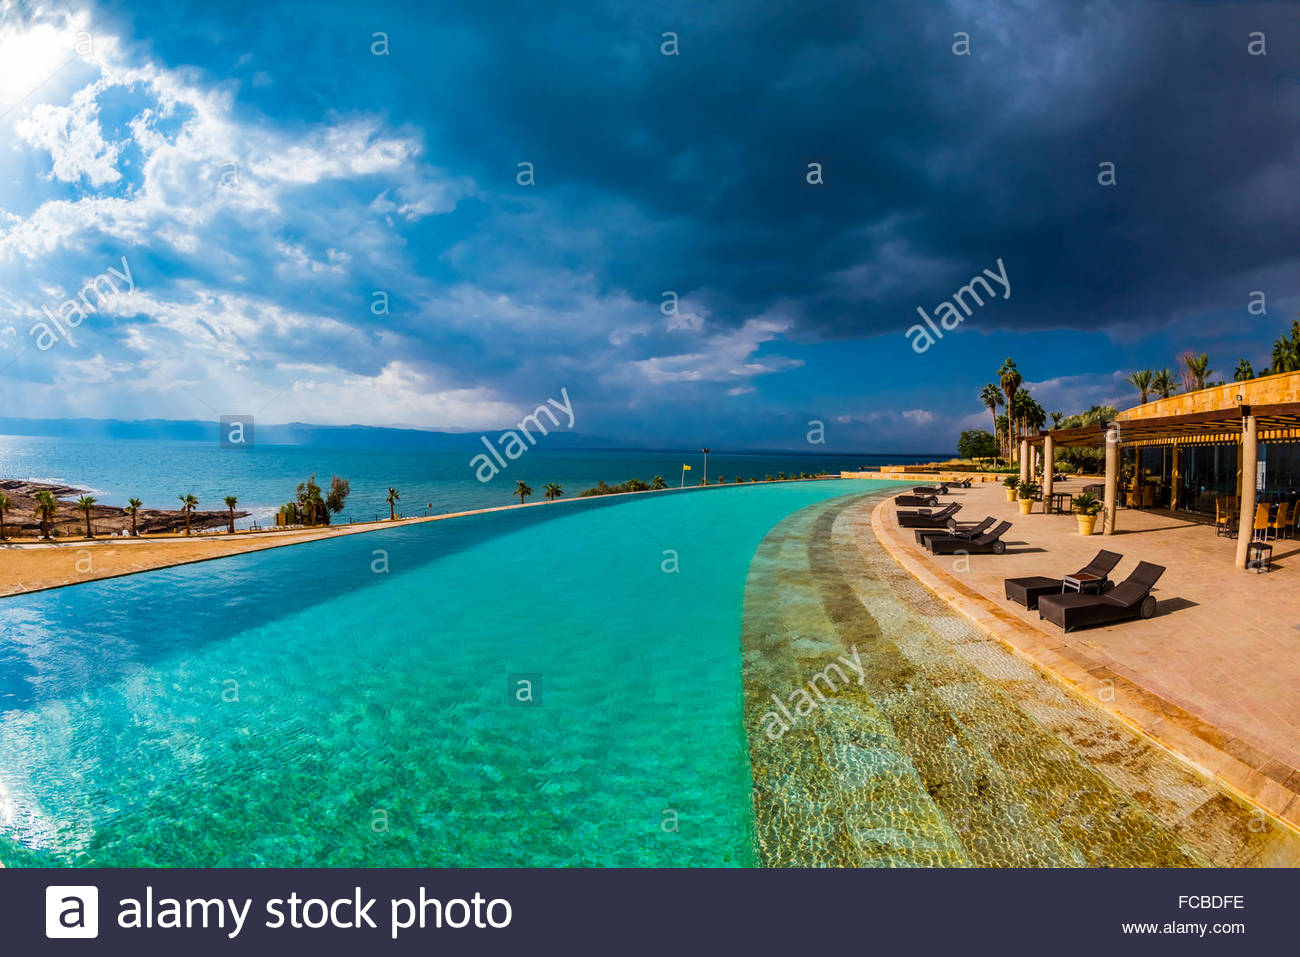 sea point swimming pool stockfotos sea point swimming pool bilder alamy. Black Bedroom Furniture Sets. Home Design Ideas